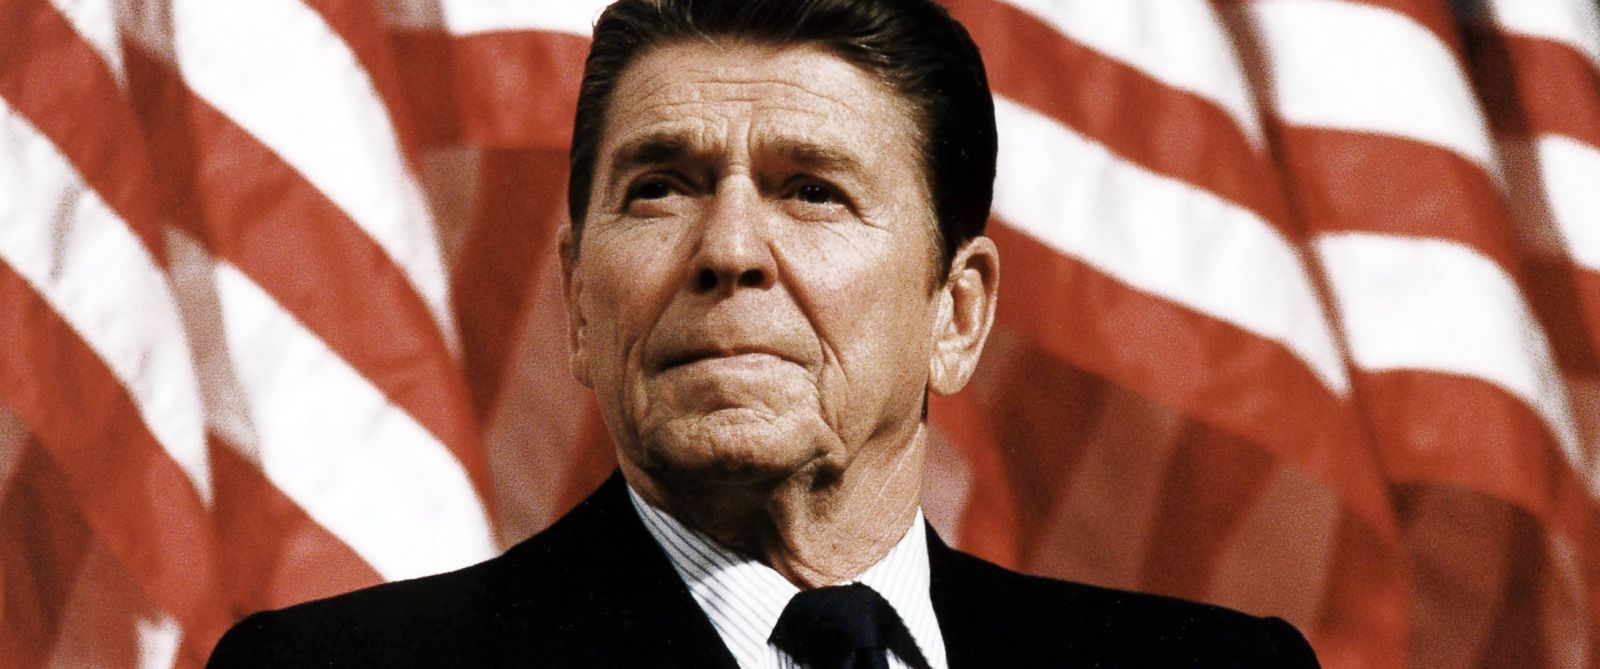 Ronald Reagan in the Nude: Former White House usher Skip